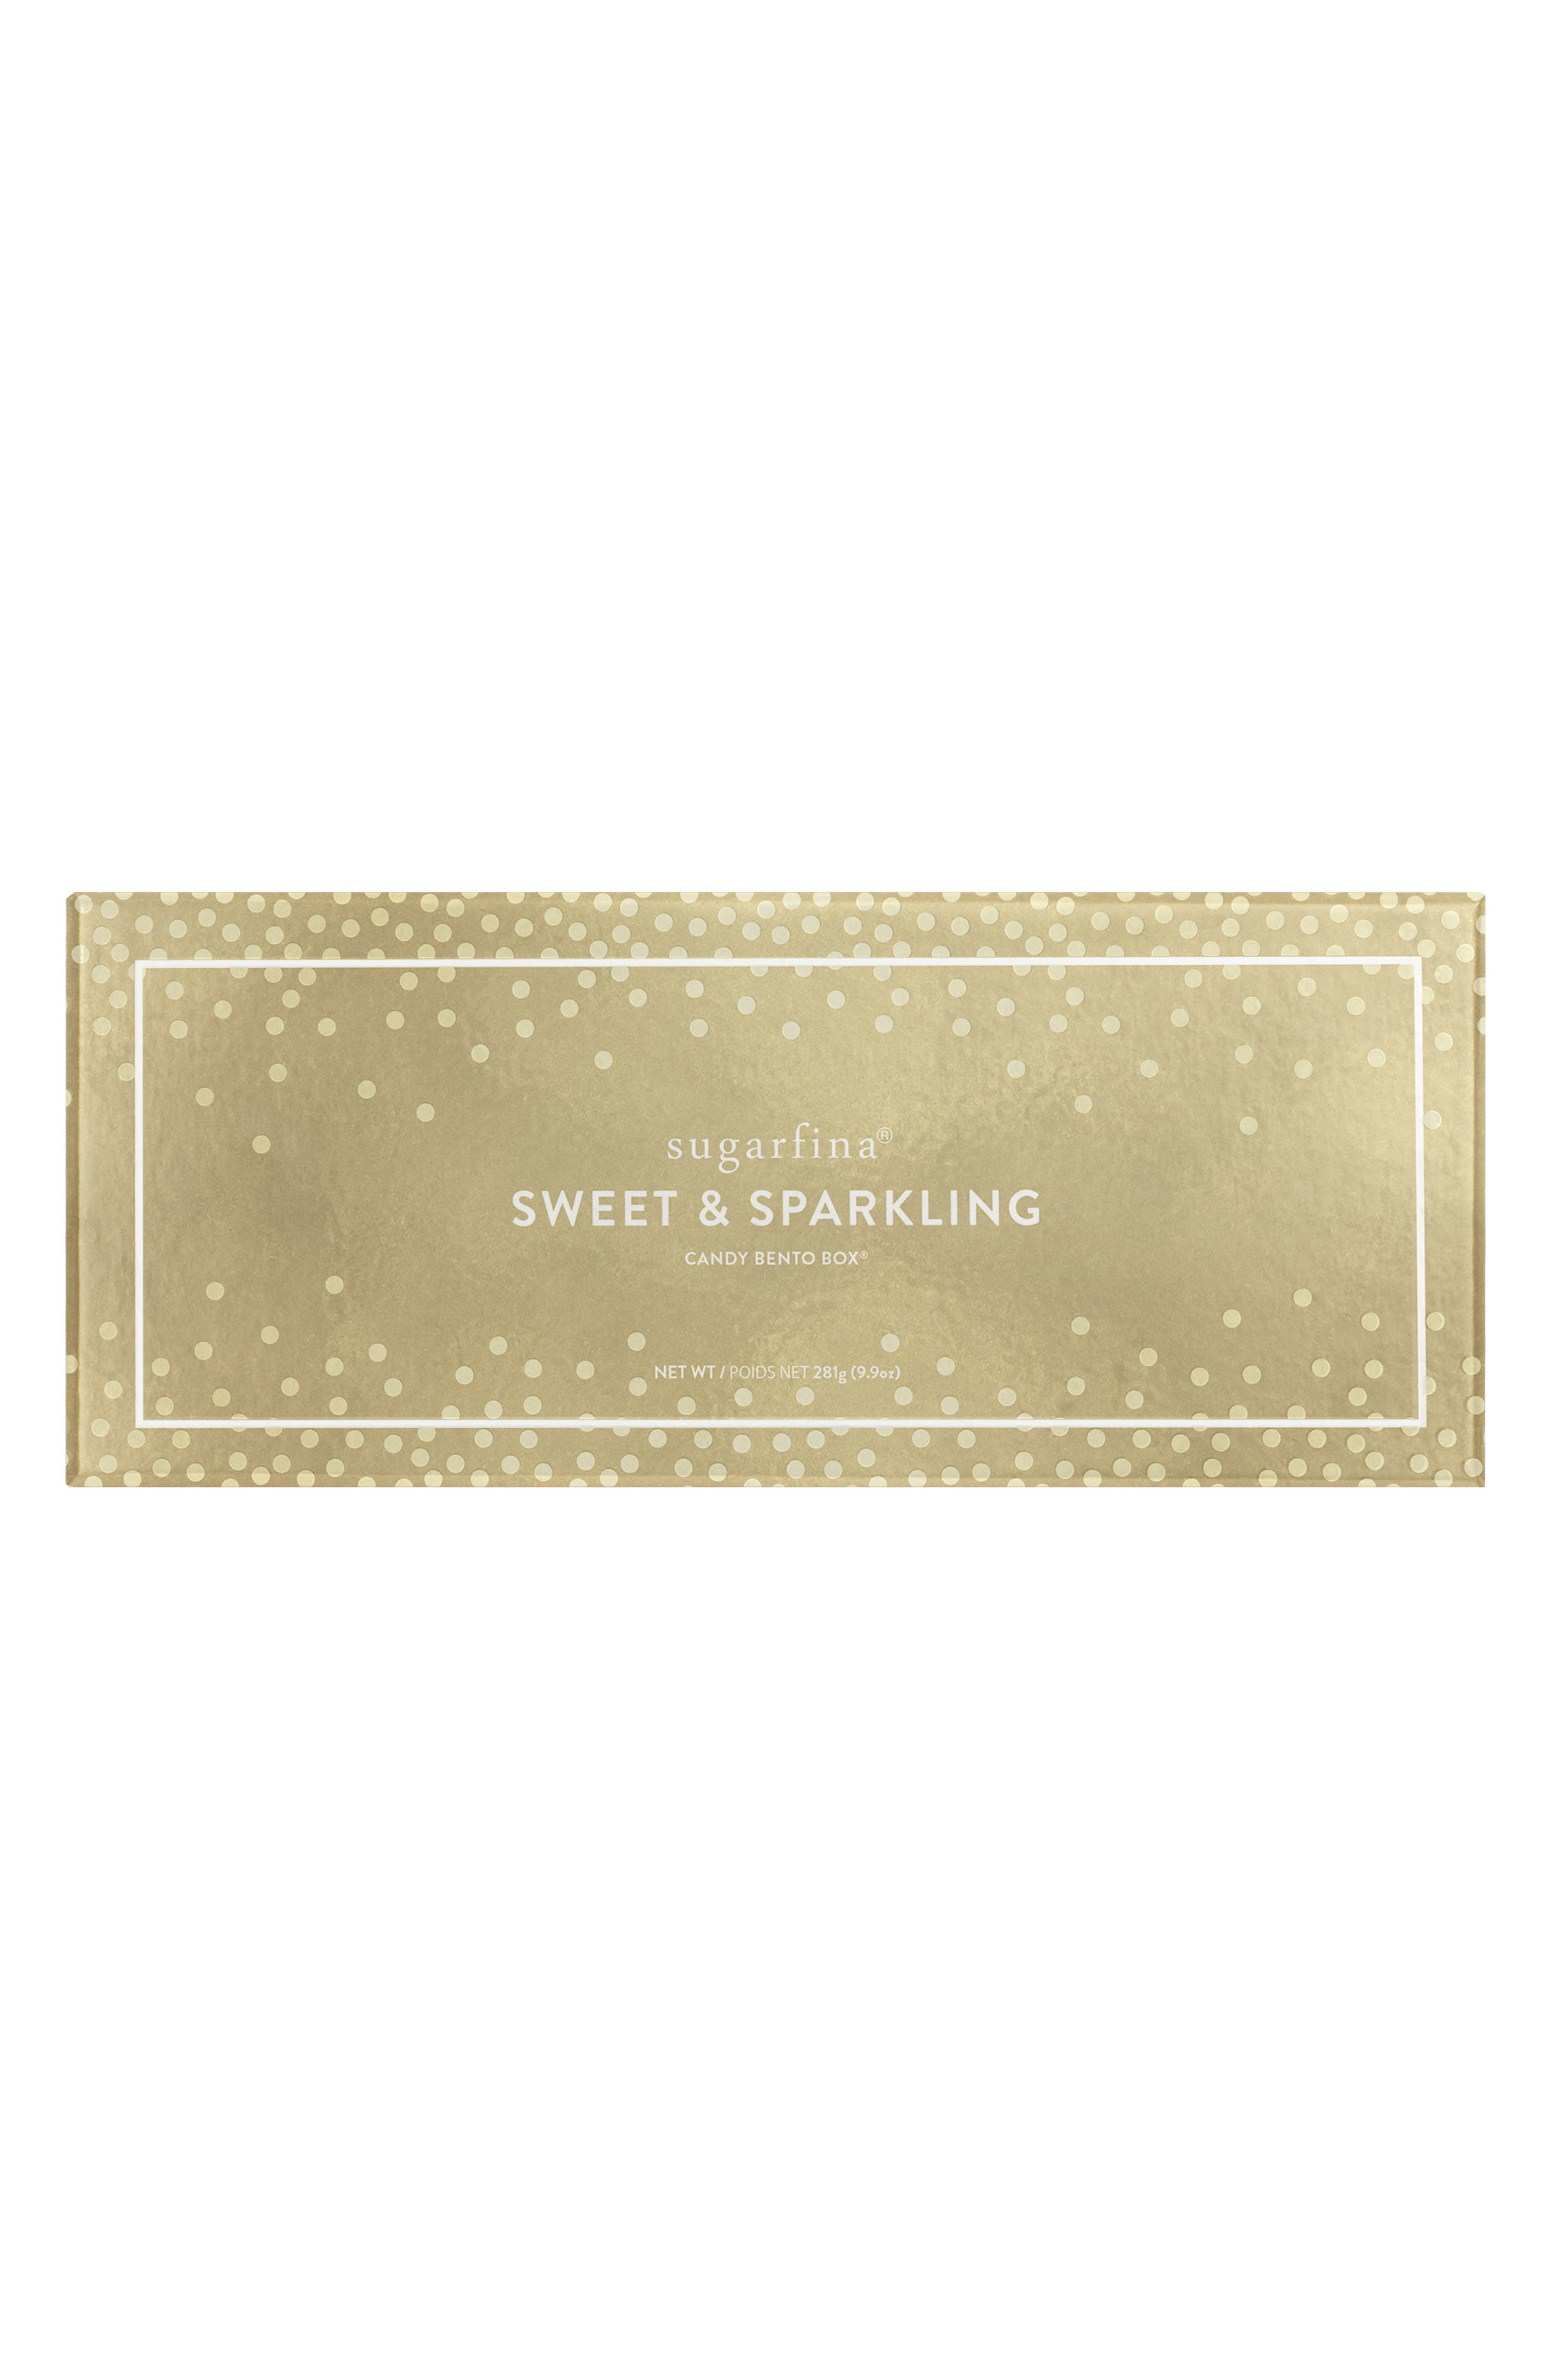 Sweet & Sparkling Set of 3 Candy Boxes,                             Alternate thumbnail 3, color,                             METALLIC GOLD